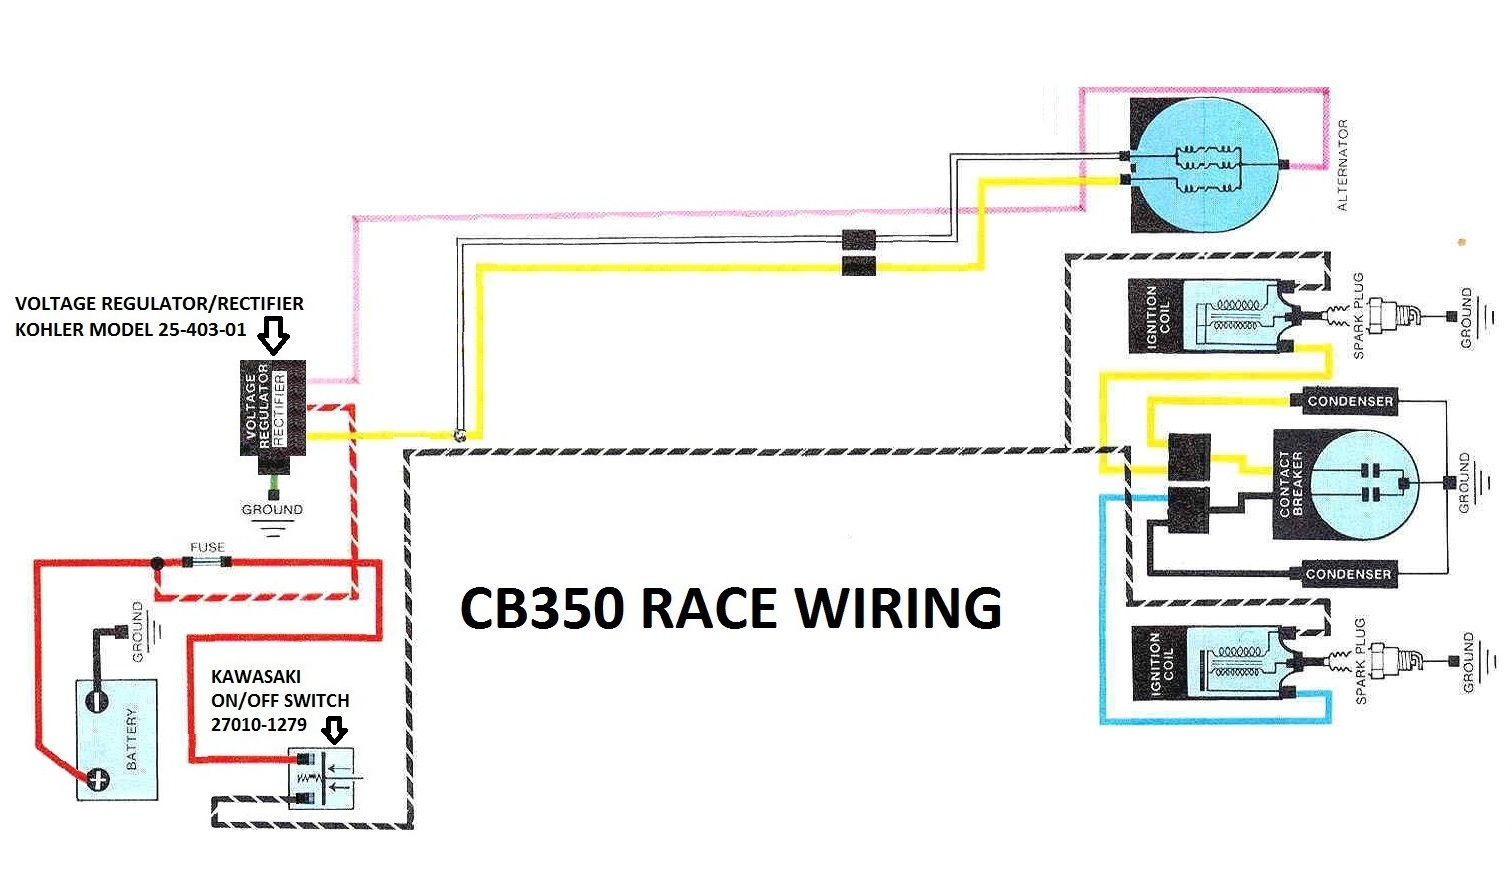 24487d1368387127 cb350 race wiring question about voltage regulator wiring cb350 race wiring cb350 race wiring a question about voltage regulator wiring total loss ignition wiring diagram at crackthecode.co